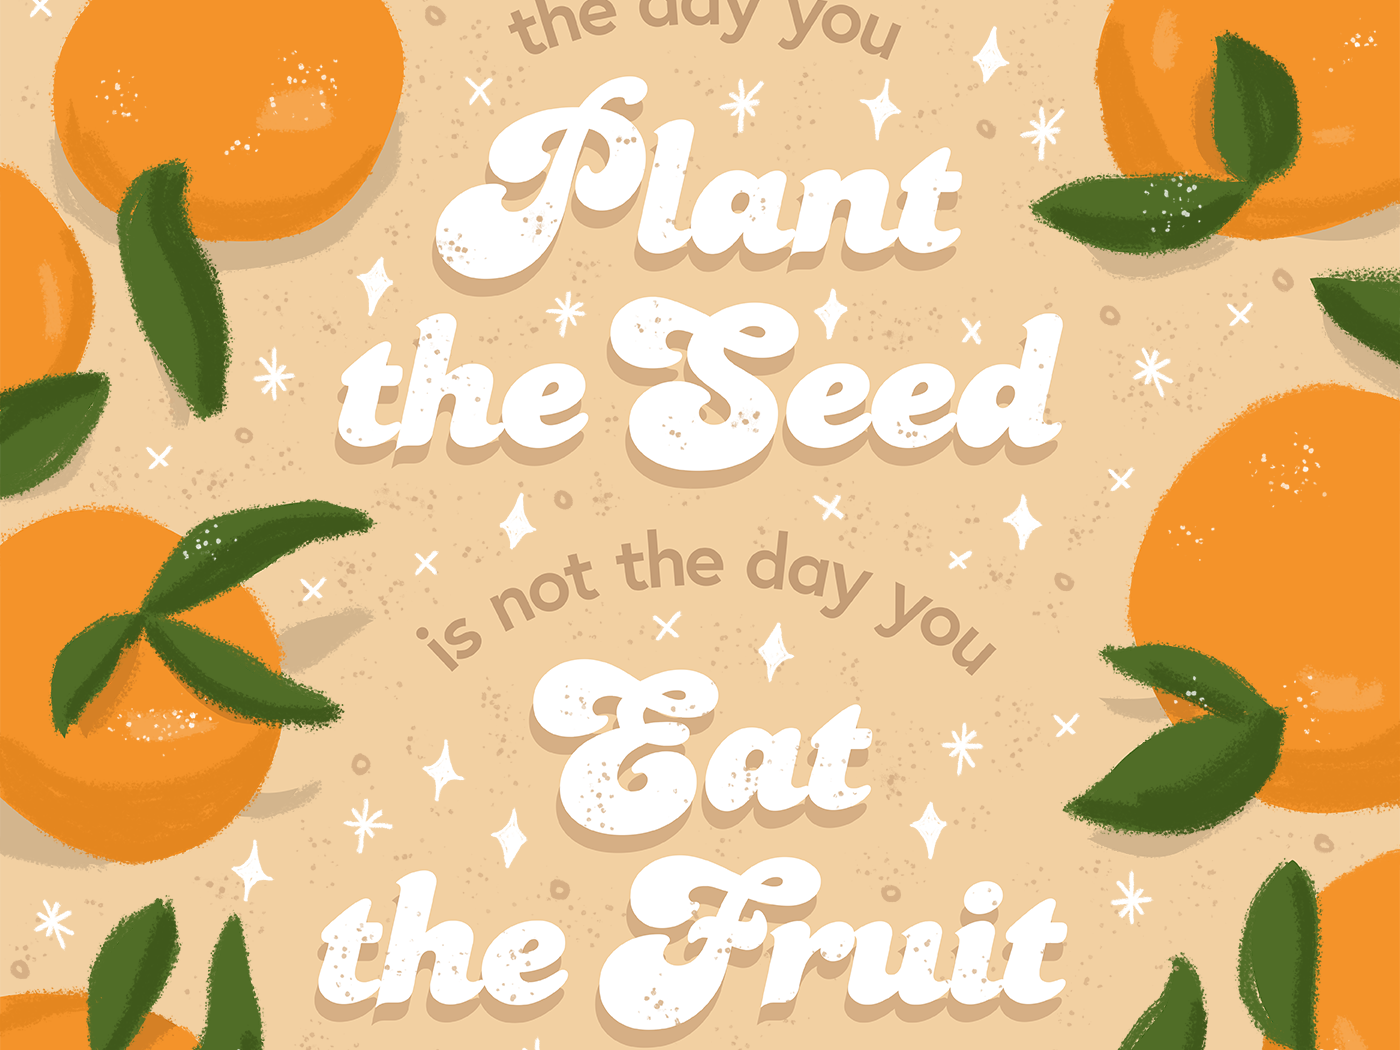 The day you plant the seed is not the day you eat the fruit procreate orange illustration fruit illustration seed letterhead poster typography handlettering lettering citrus fruit oranges orange digital drawing digital art drawing illustration qotd quote of the day quote